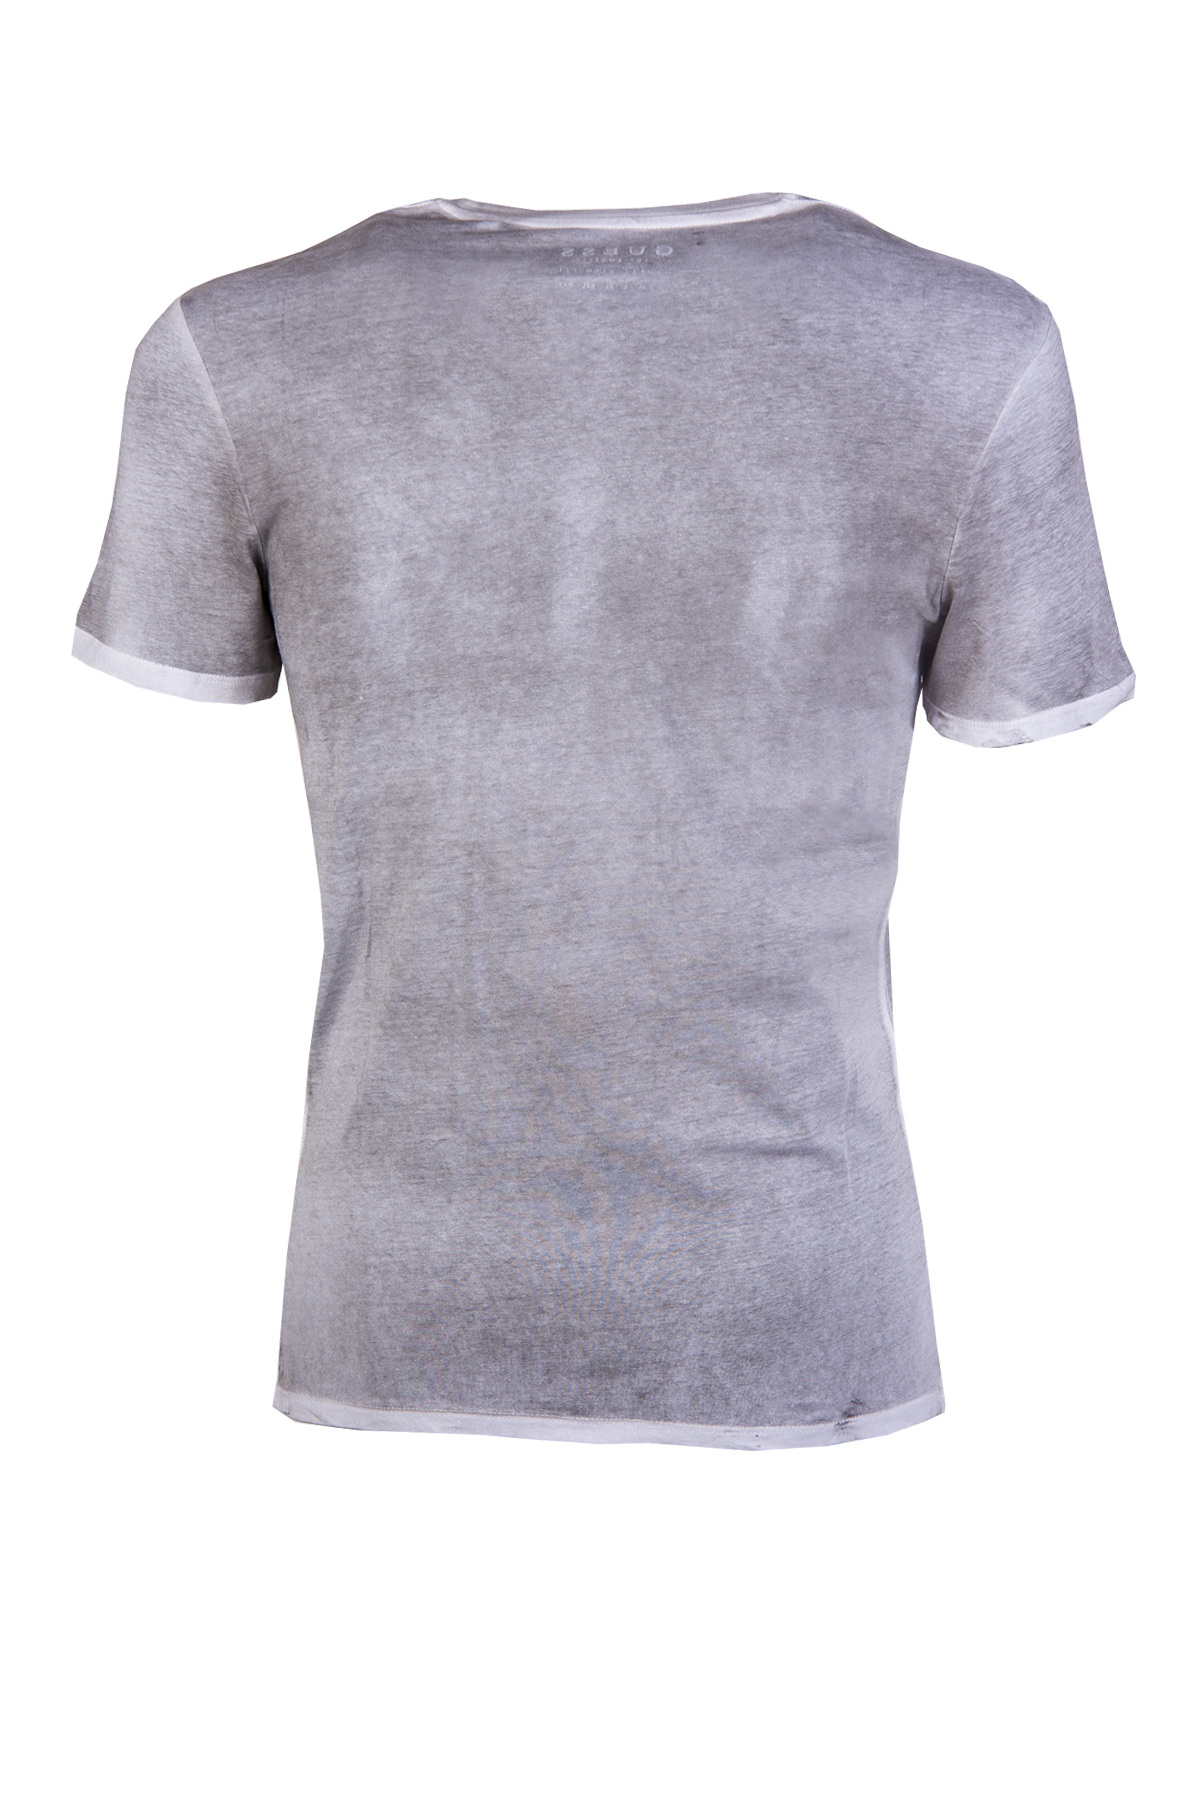 T-SHIRT CON LOGO GUESS | T-shirt | M81I35J1300FY97DARKSHADOWSP